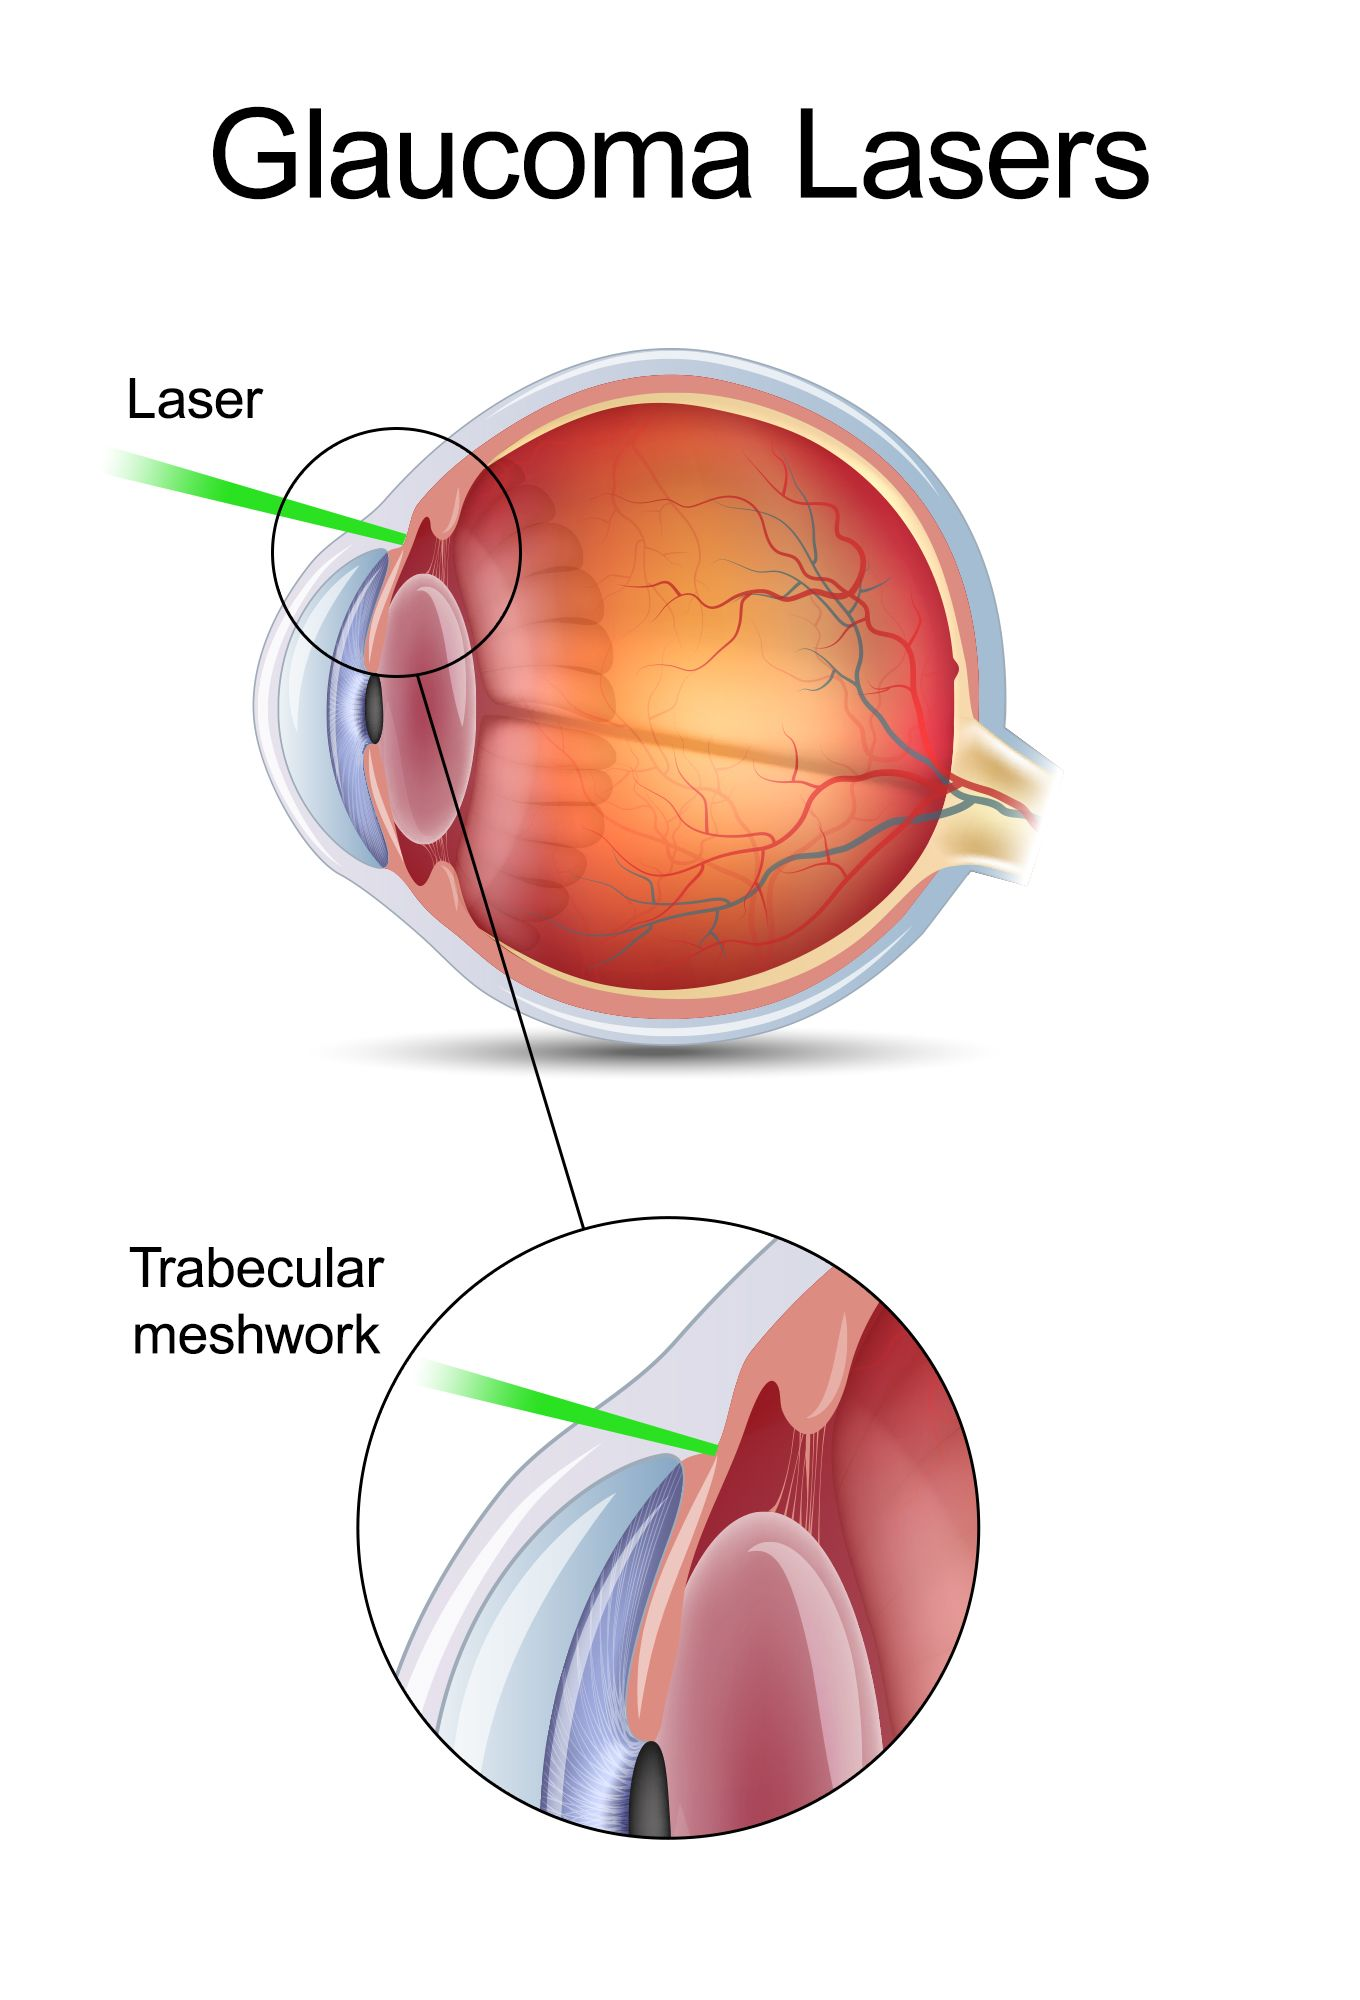 Illustration of a laser being used to treat glaucoma